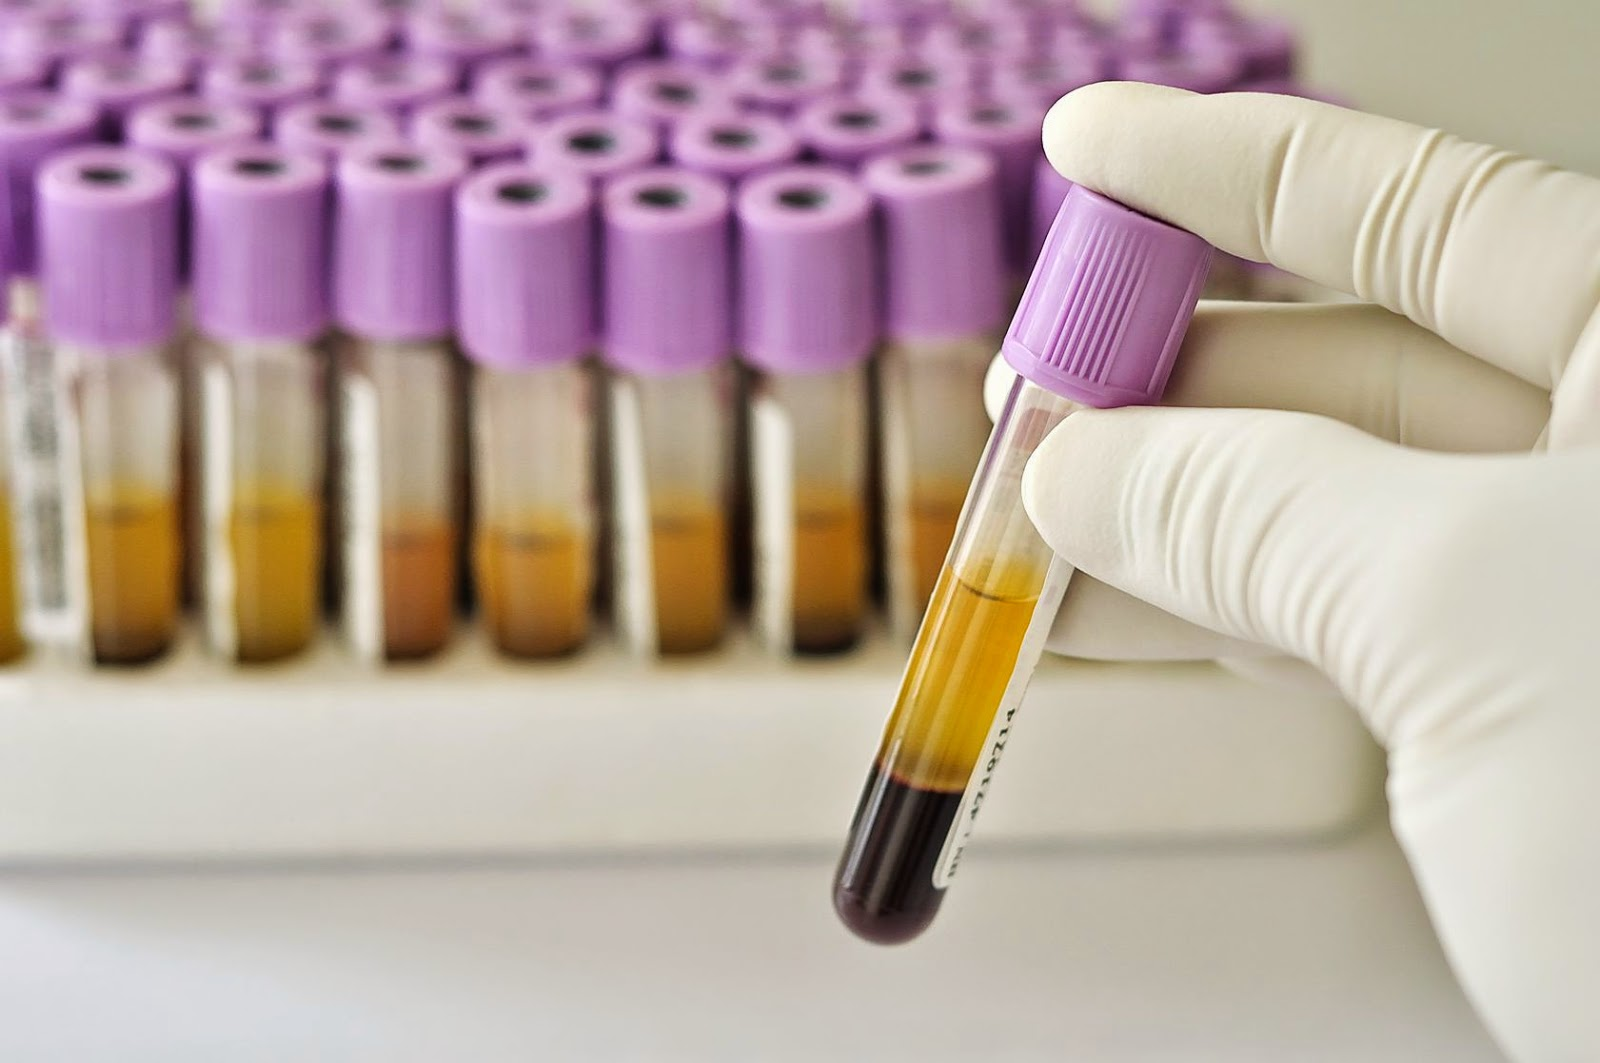 Blood Test For Prostate Cancer